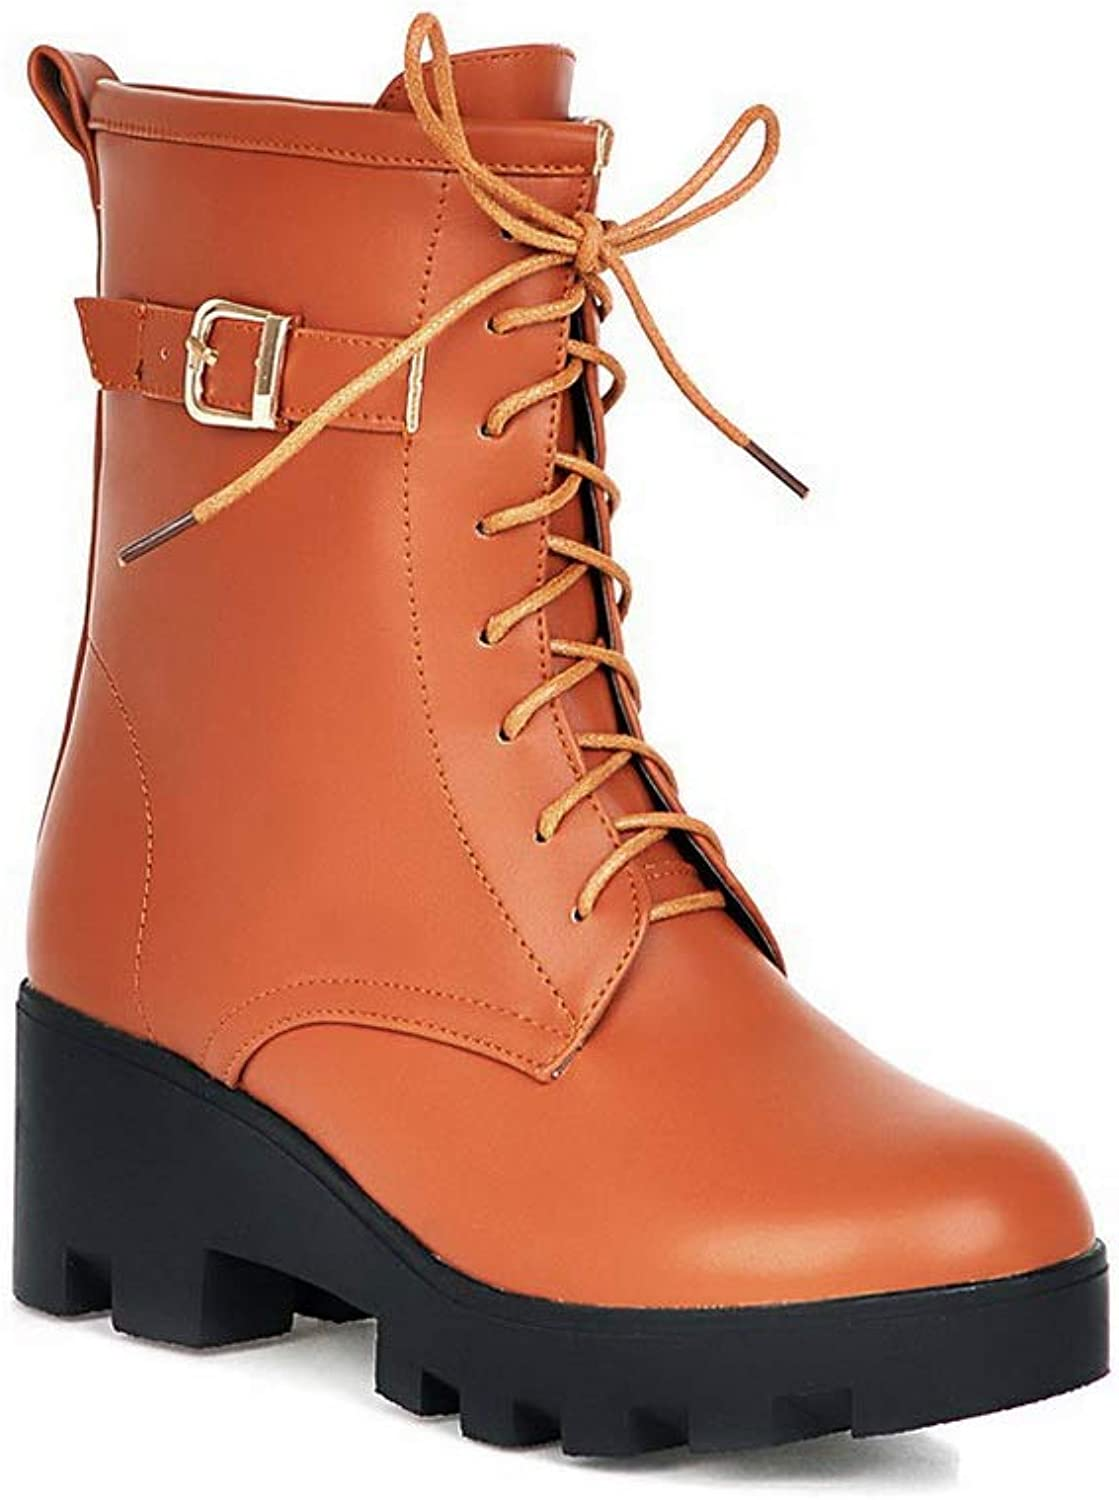 BalaMasa Womens Casual Travel Solid Leather Boots ABL10727